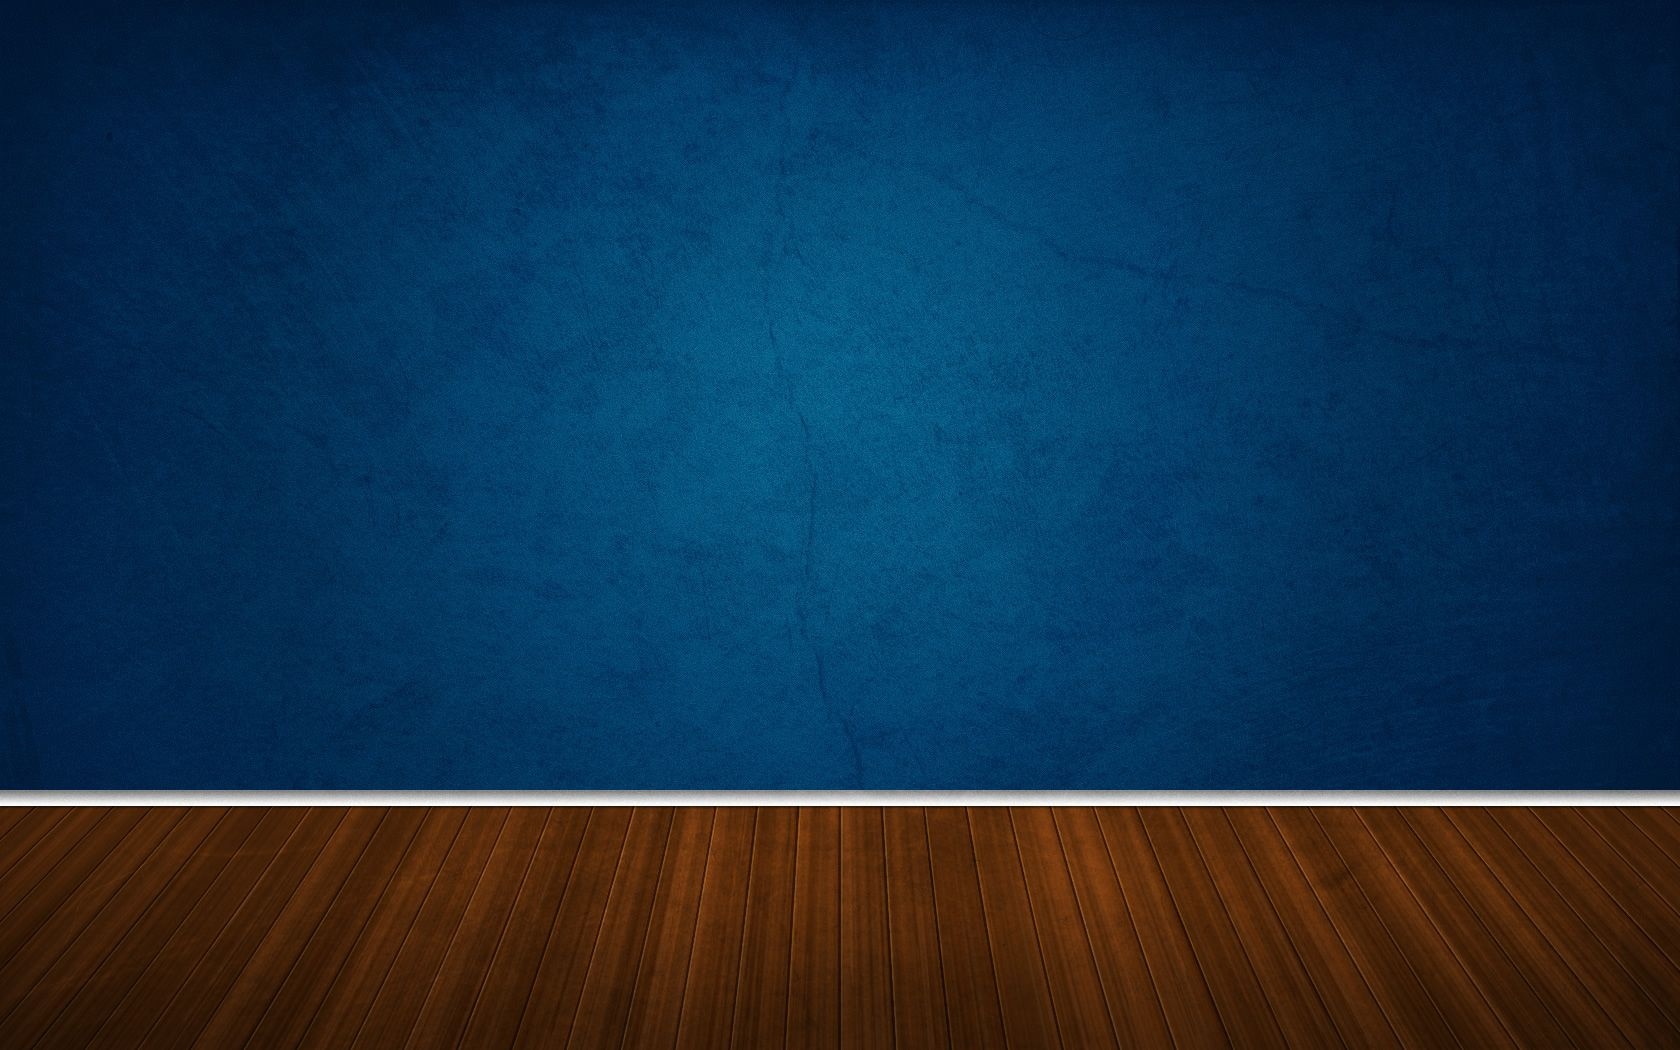 modern-wall-and-floor-background-with-floorboard-and-